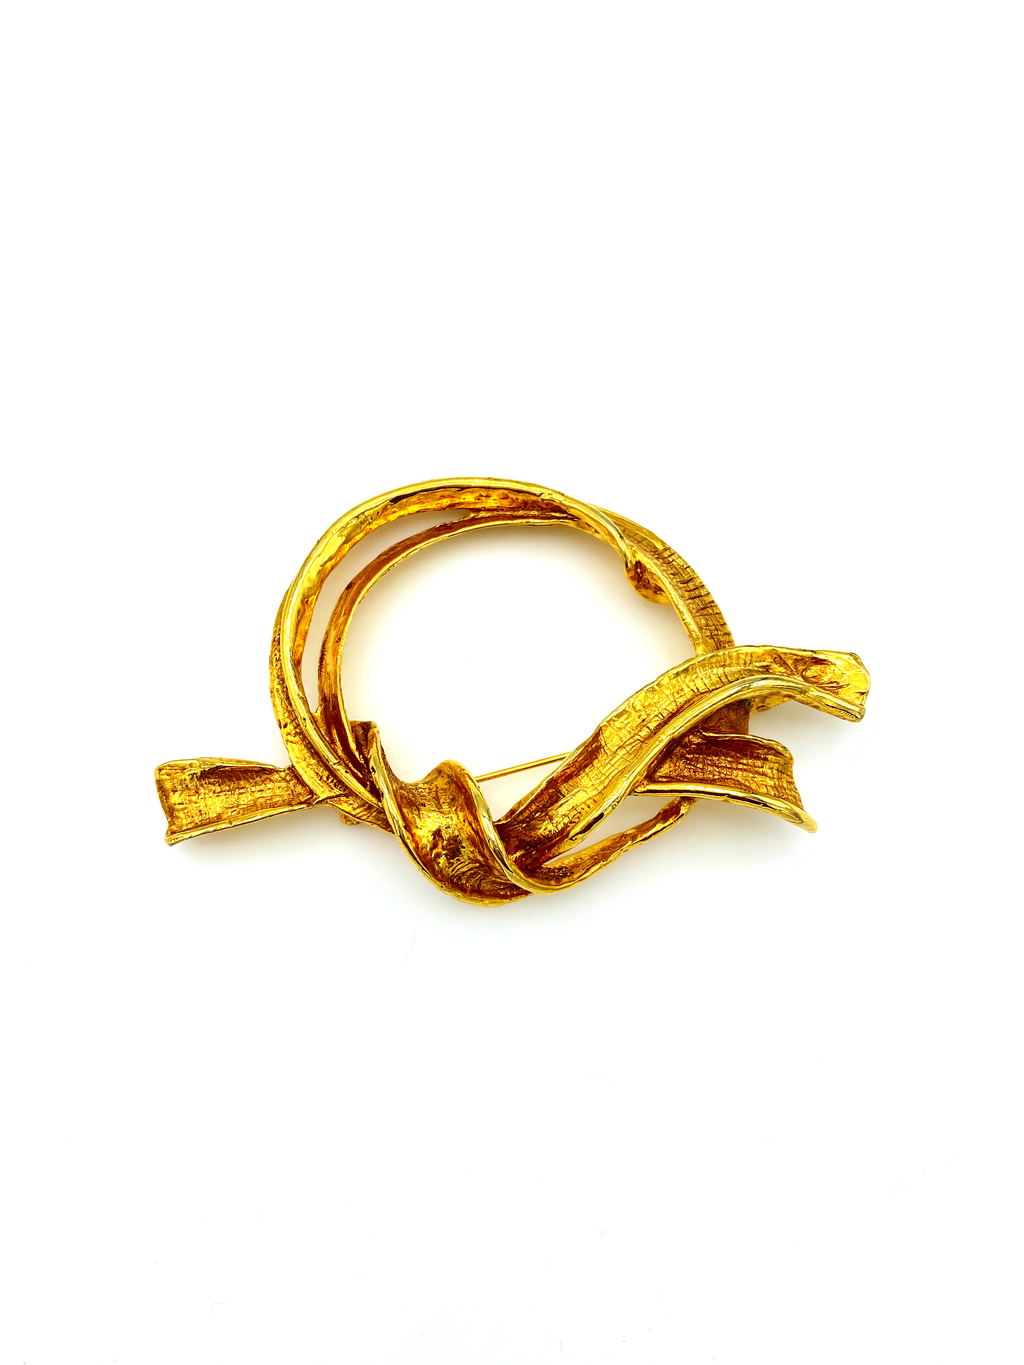 Antigona Paris Classic Large Gold Ribbon Statement Brooch-Sustainable Fashion with Vintage Style-Trending Designer Fashion-24 Wishes